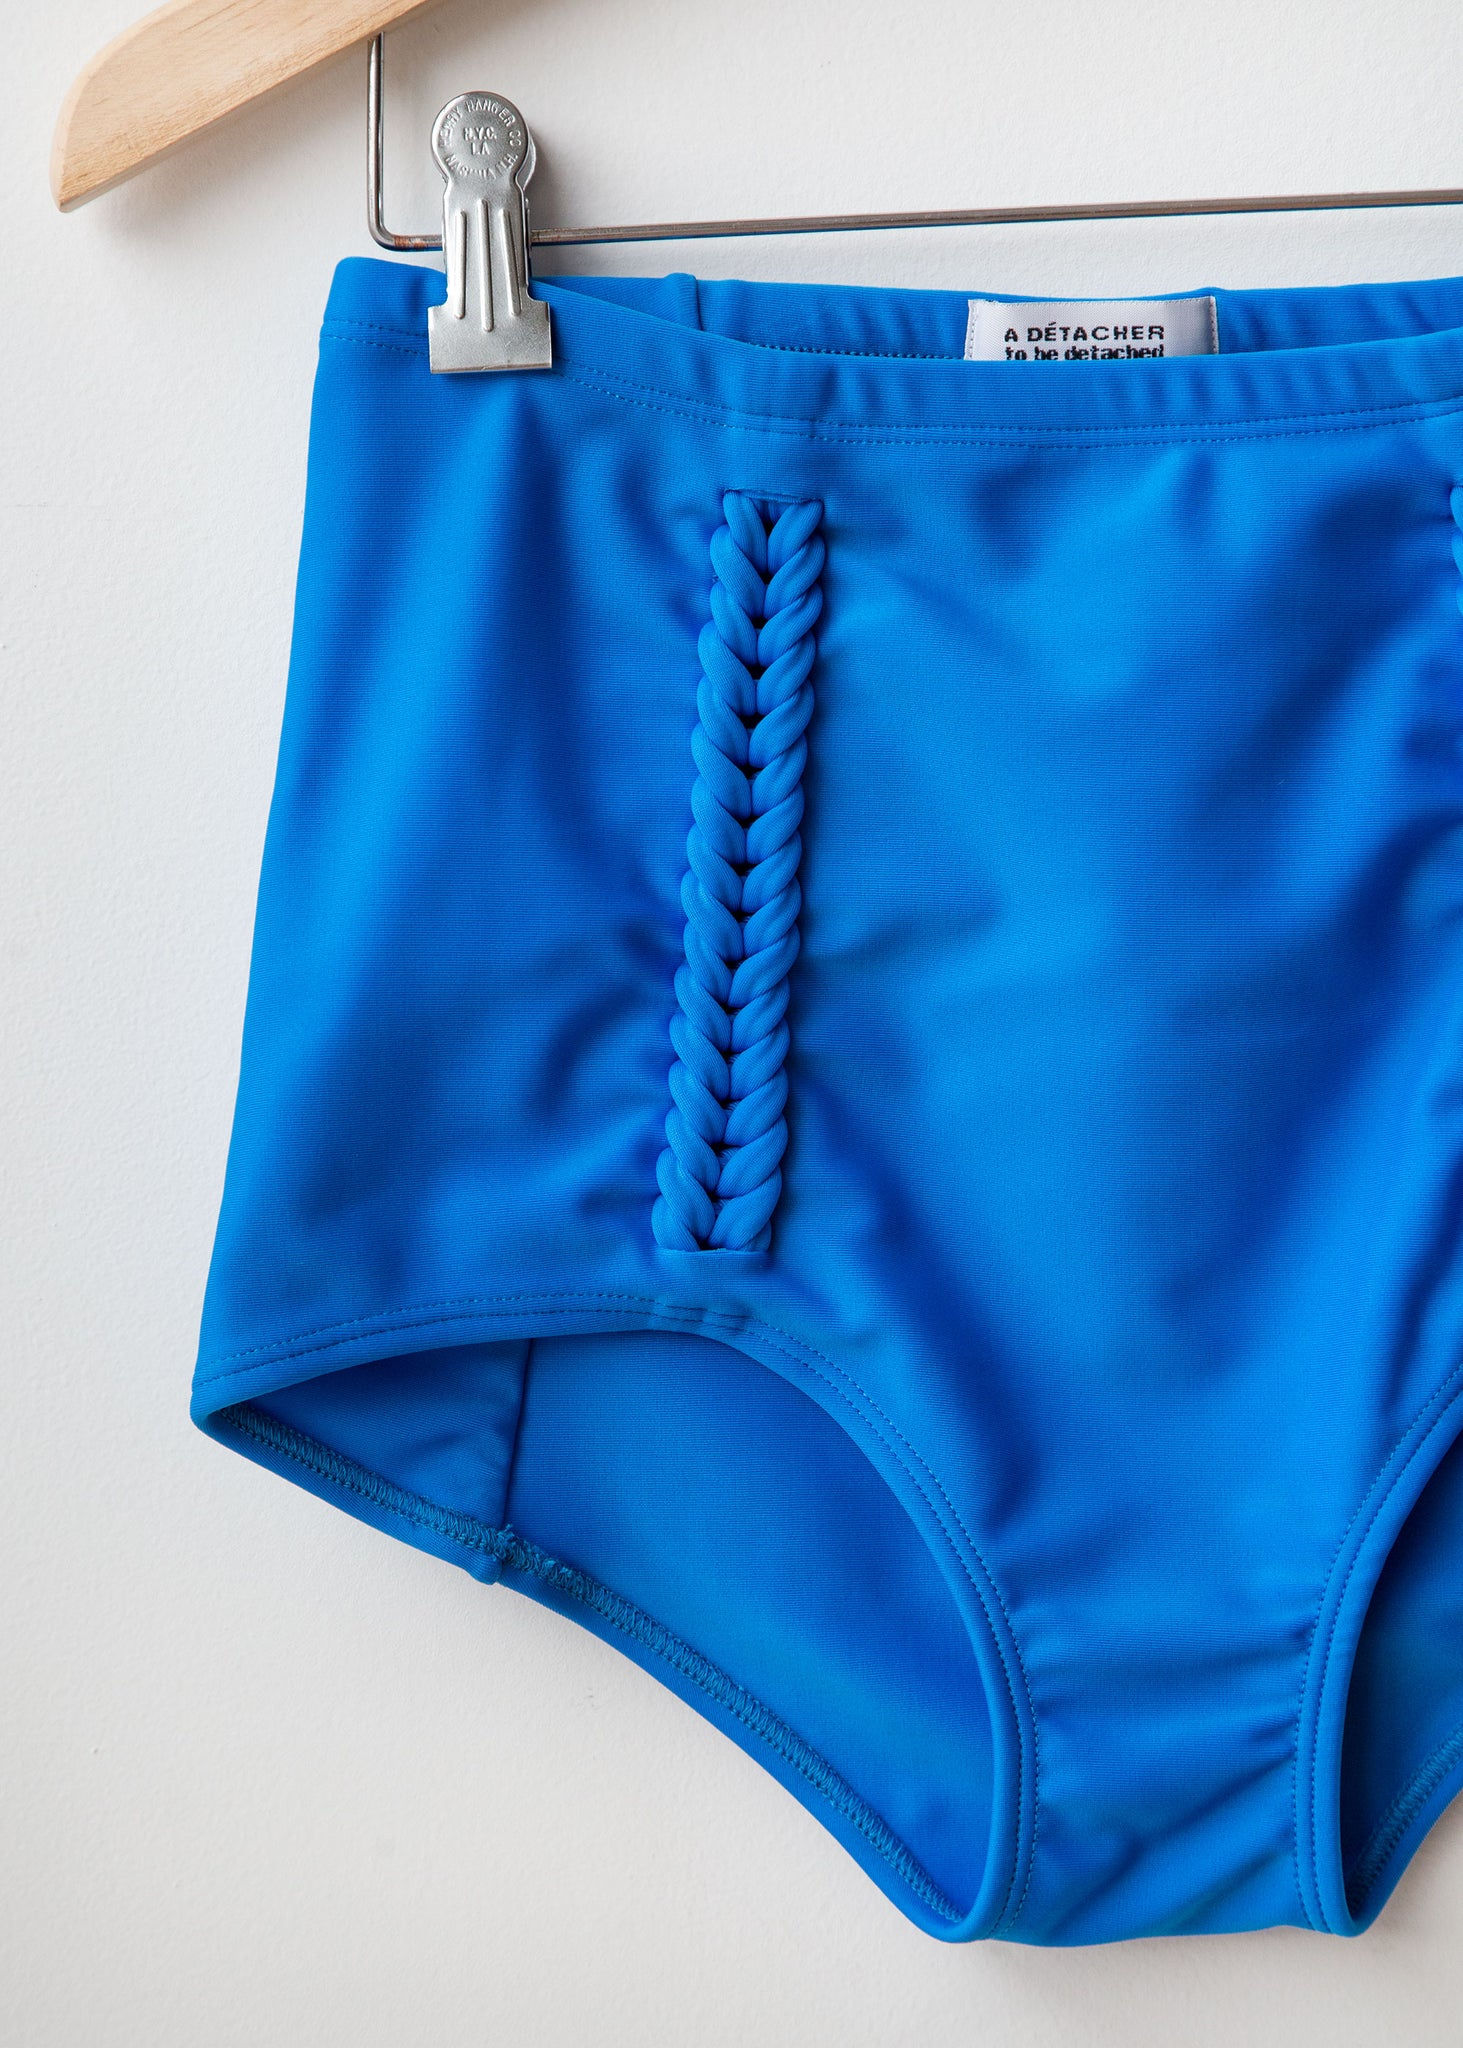 Dawn Bottoms in Egyptian Blue